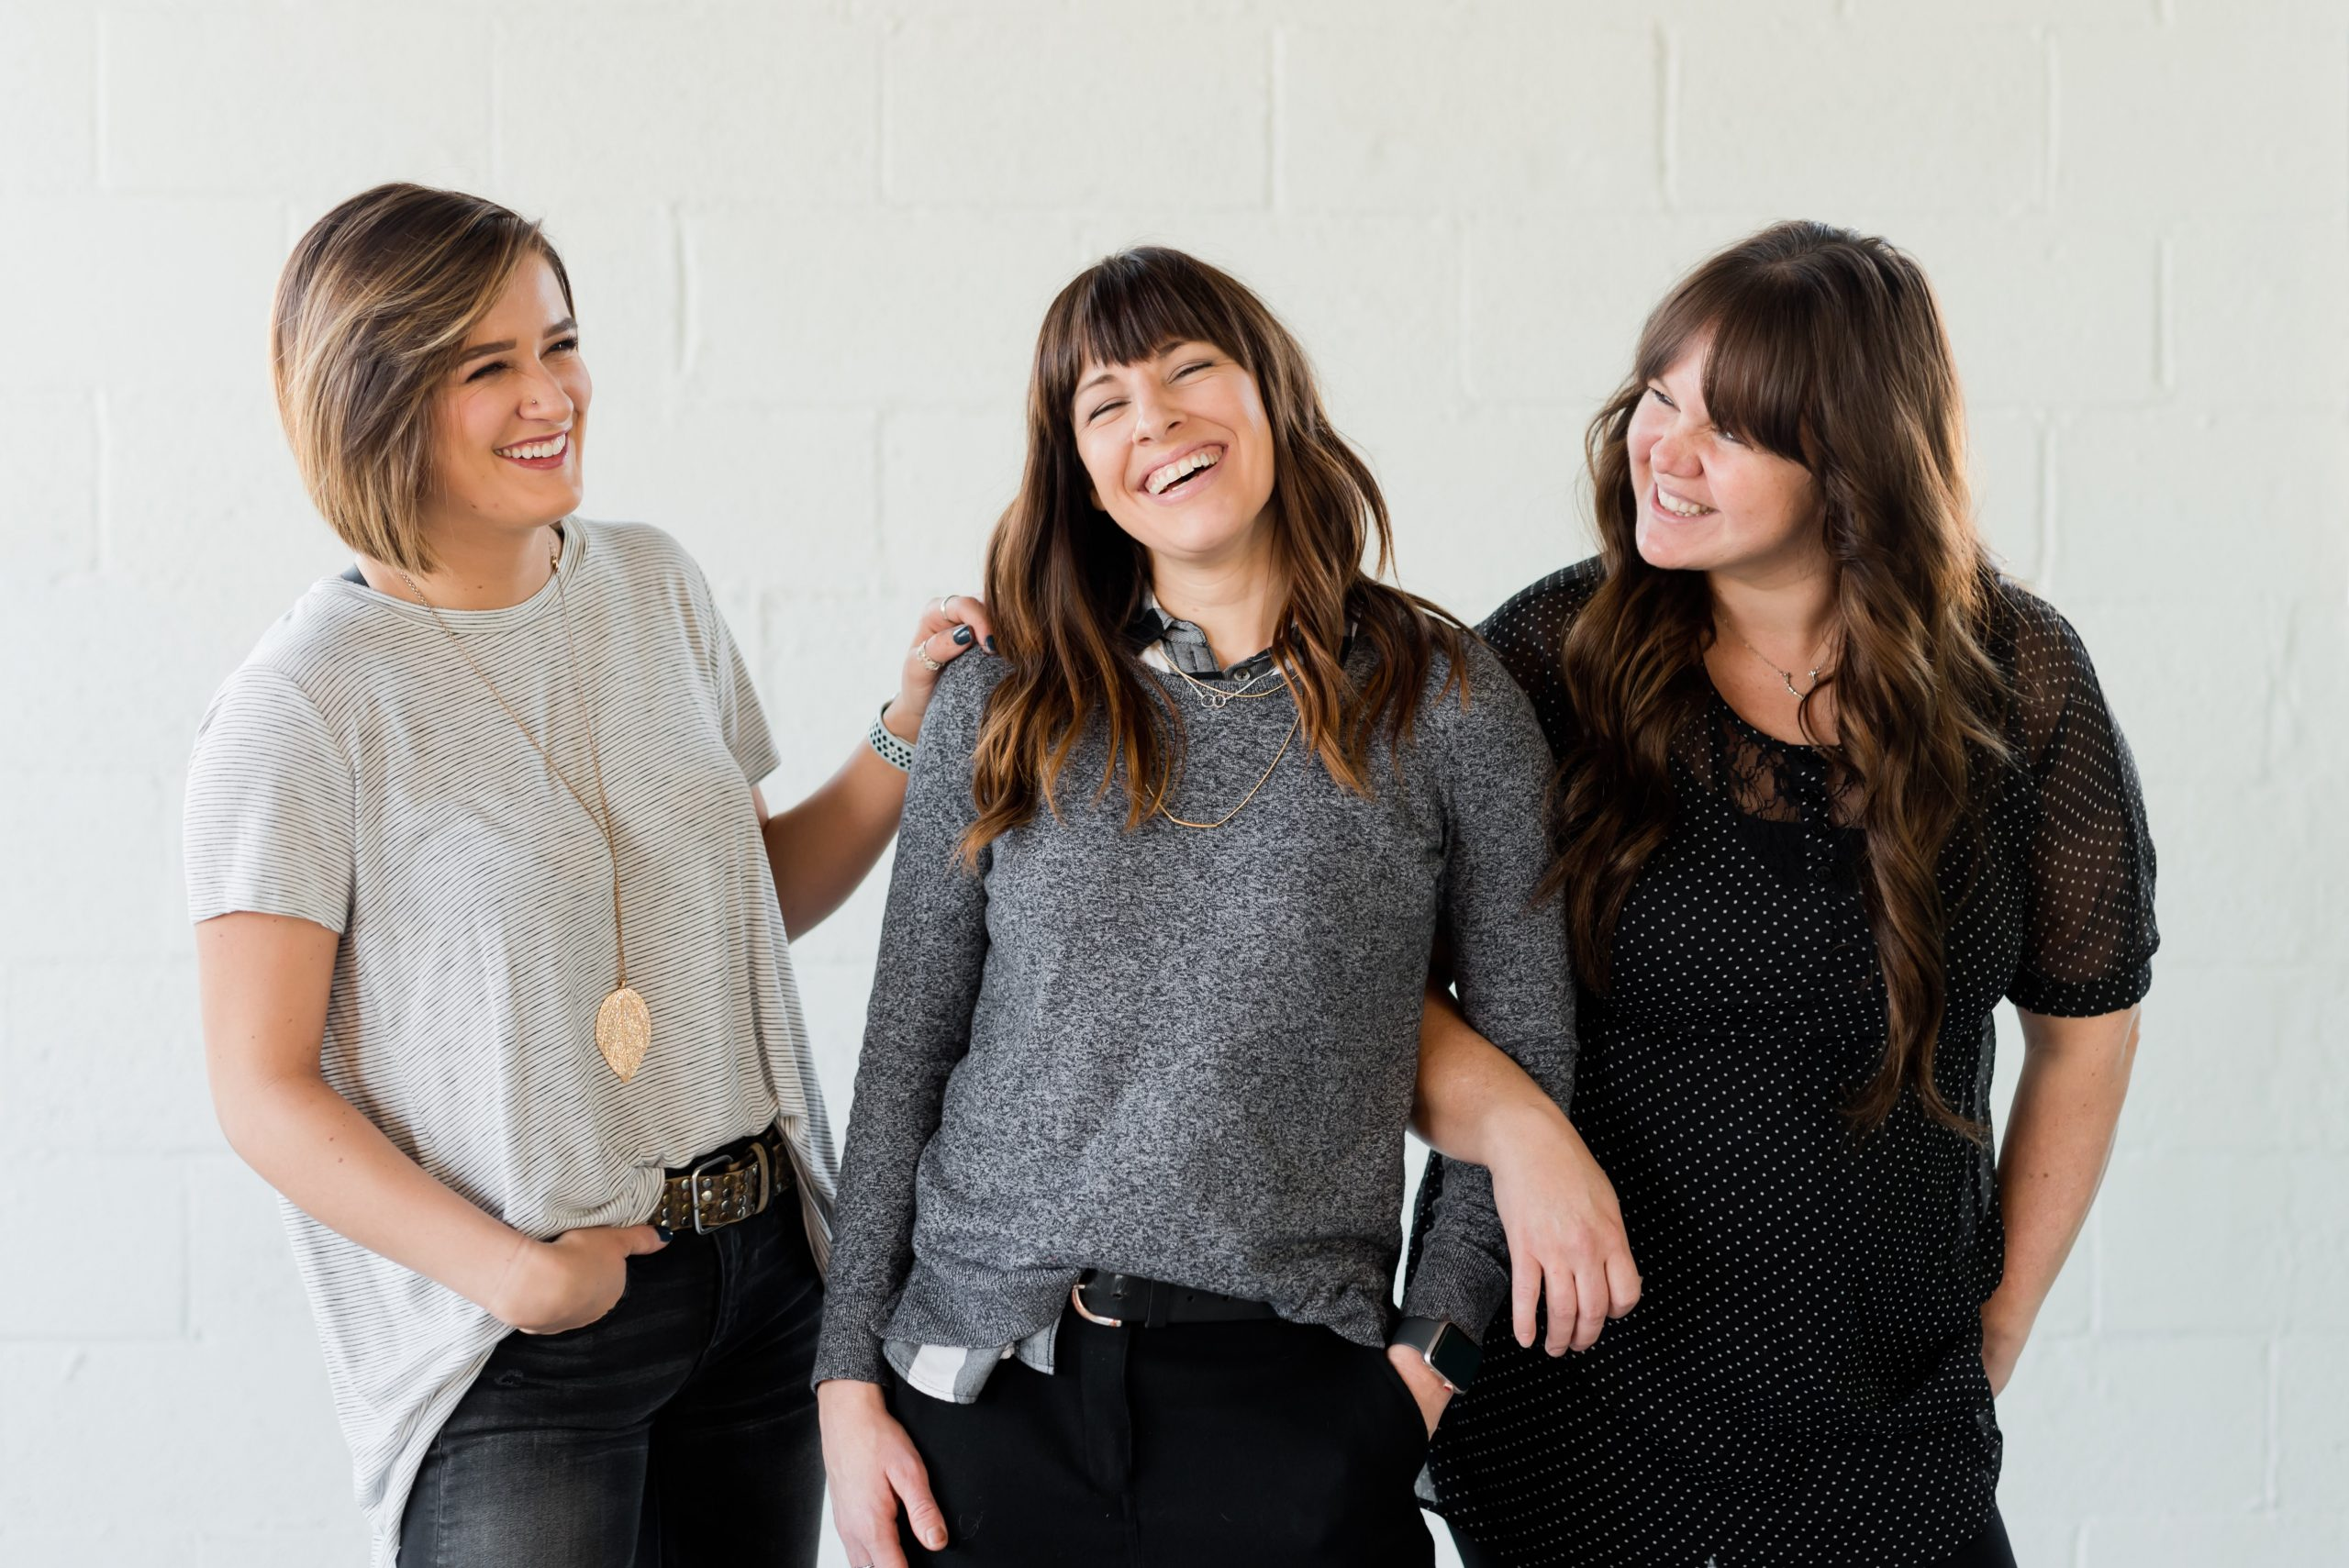 Image shows 3 girls stood arm in arm, smiling and sharing a laugh.